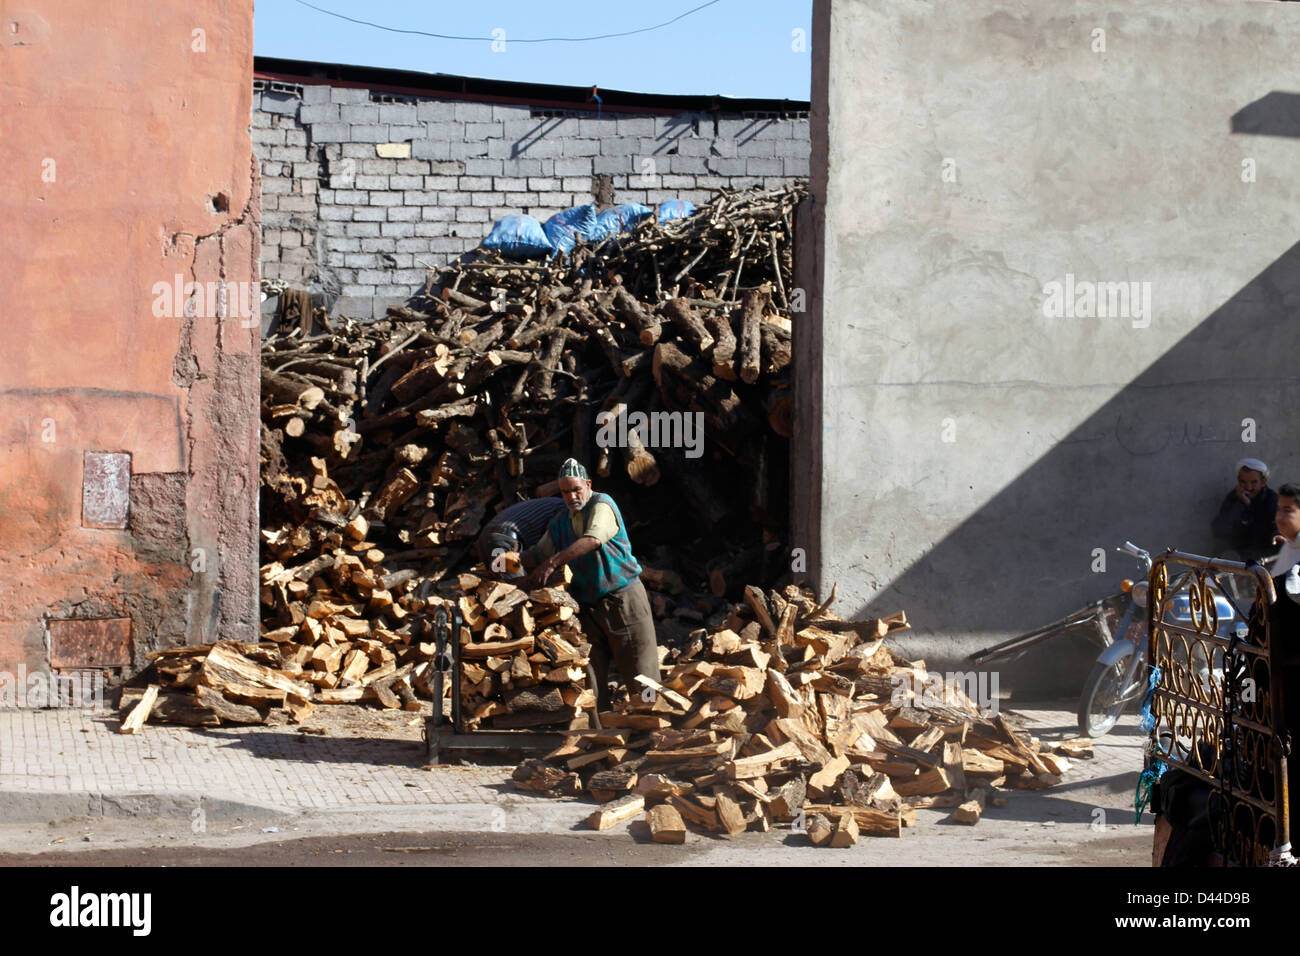 Manual labor chopping firewood - Stock Image